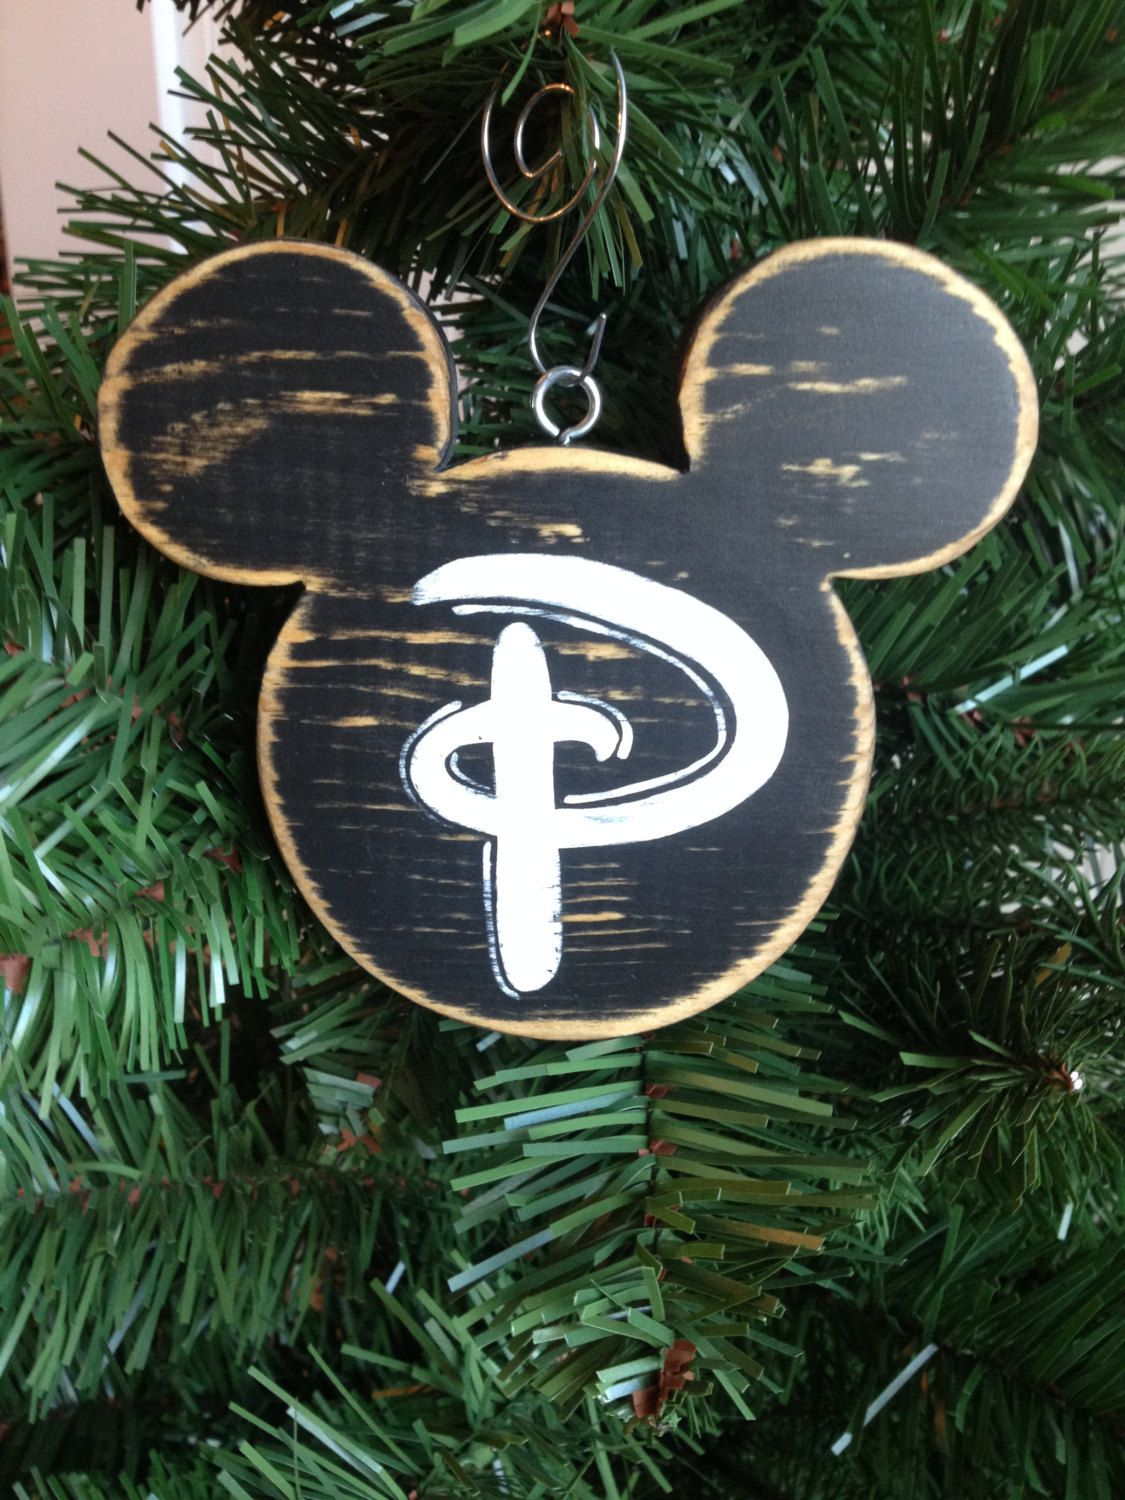 Mickey Mouse Christmas Wood Ornament Holiday By Celebrateornaments 12 00 Disney Christmas Ornaments Disney Christmas Tree Mickey Mouse Christmas